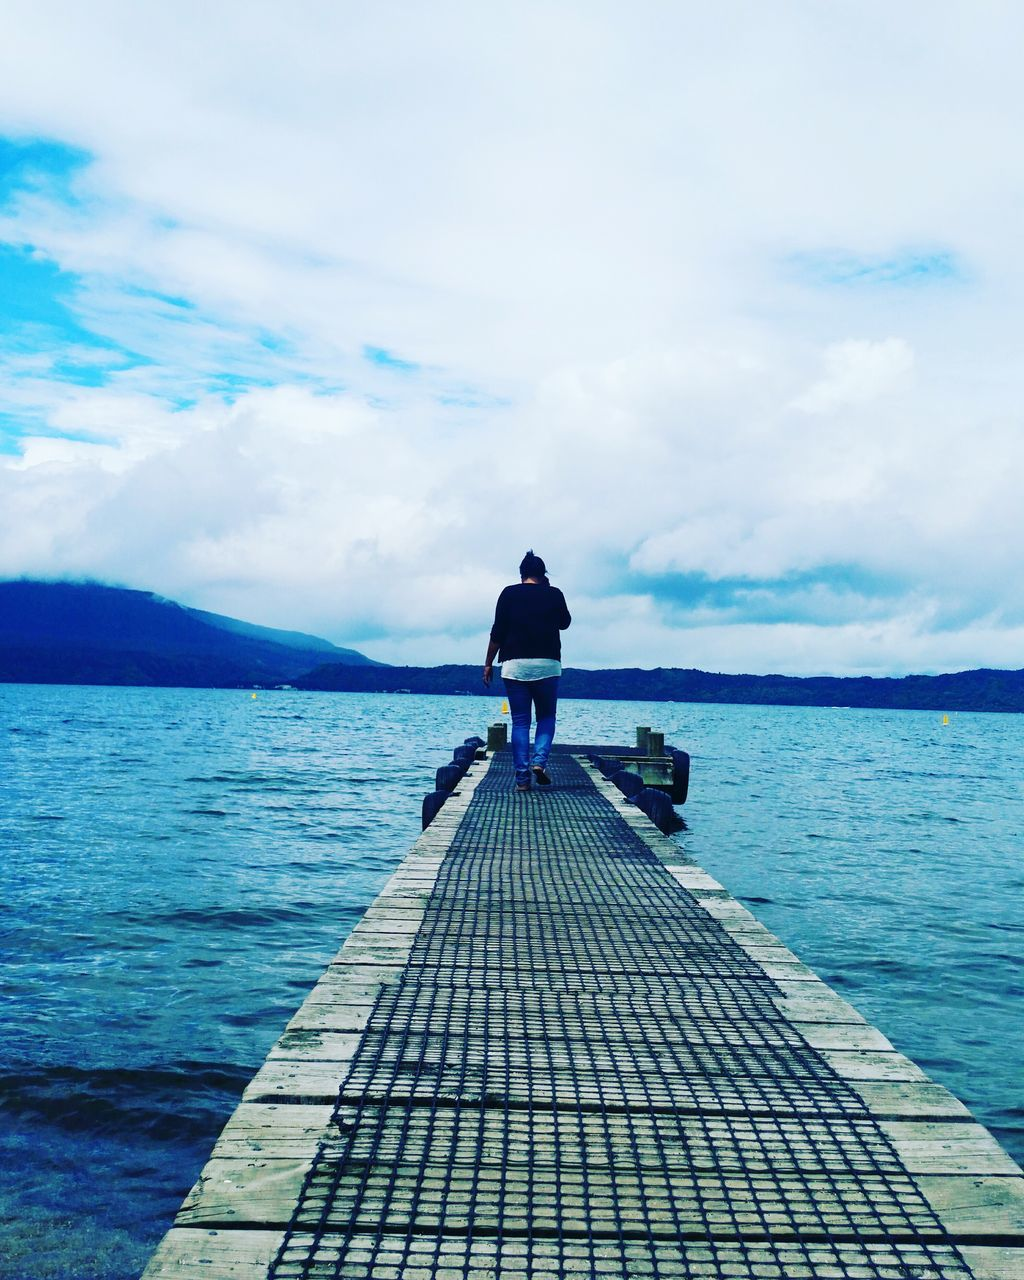 full length, rear view, sky, one person, water, cloud - sky, real people, sea, tranquil scene, standing, jetty, day, nature, outdoors, scenics, beauty in nature, tranquility, leisure activity, horizon over water, wood paneling, adult, people